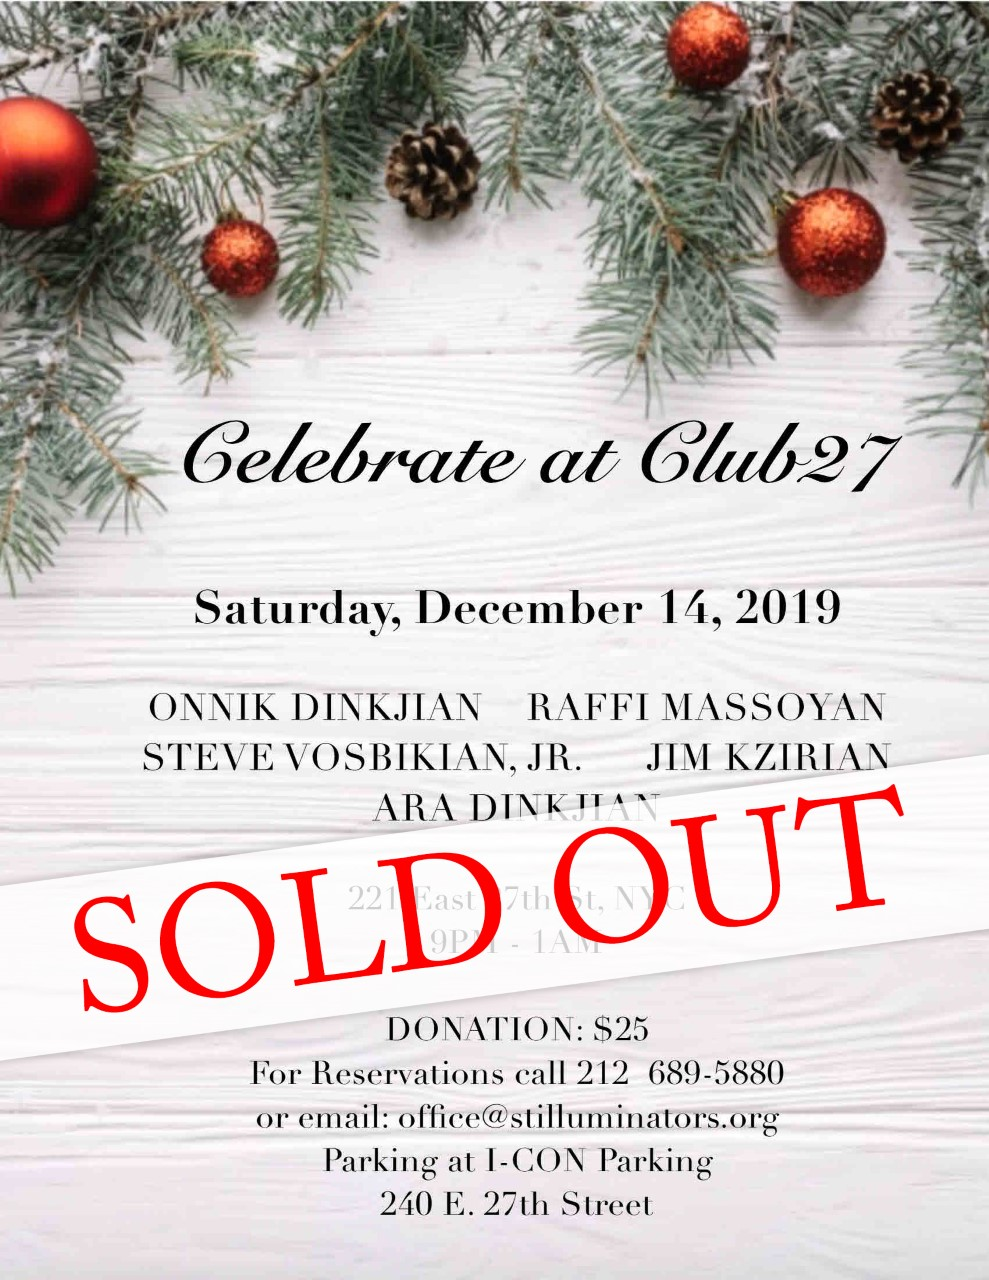 Club-27-2019-SOLD-OUT